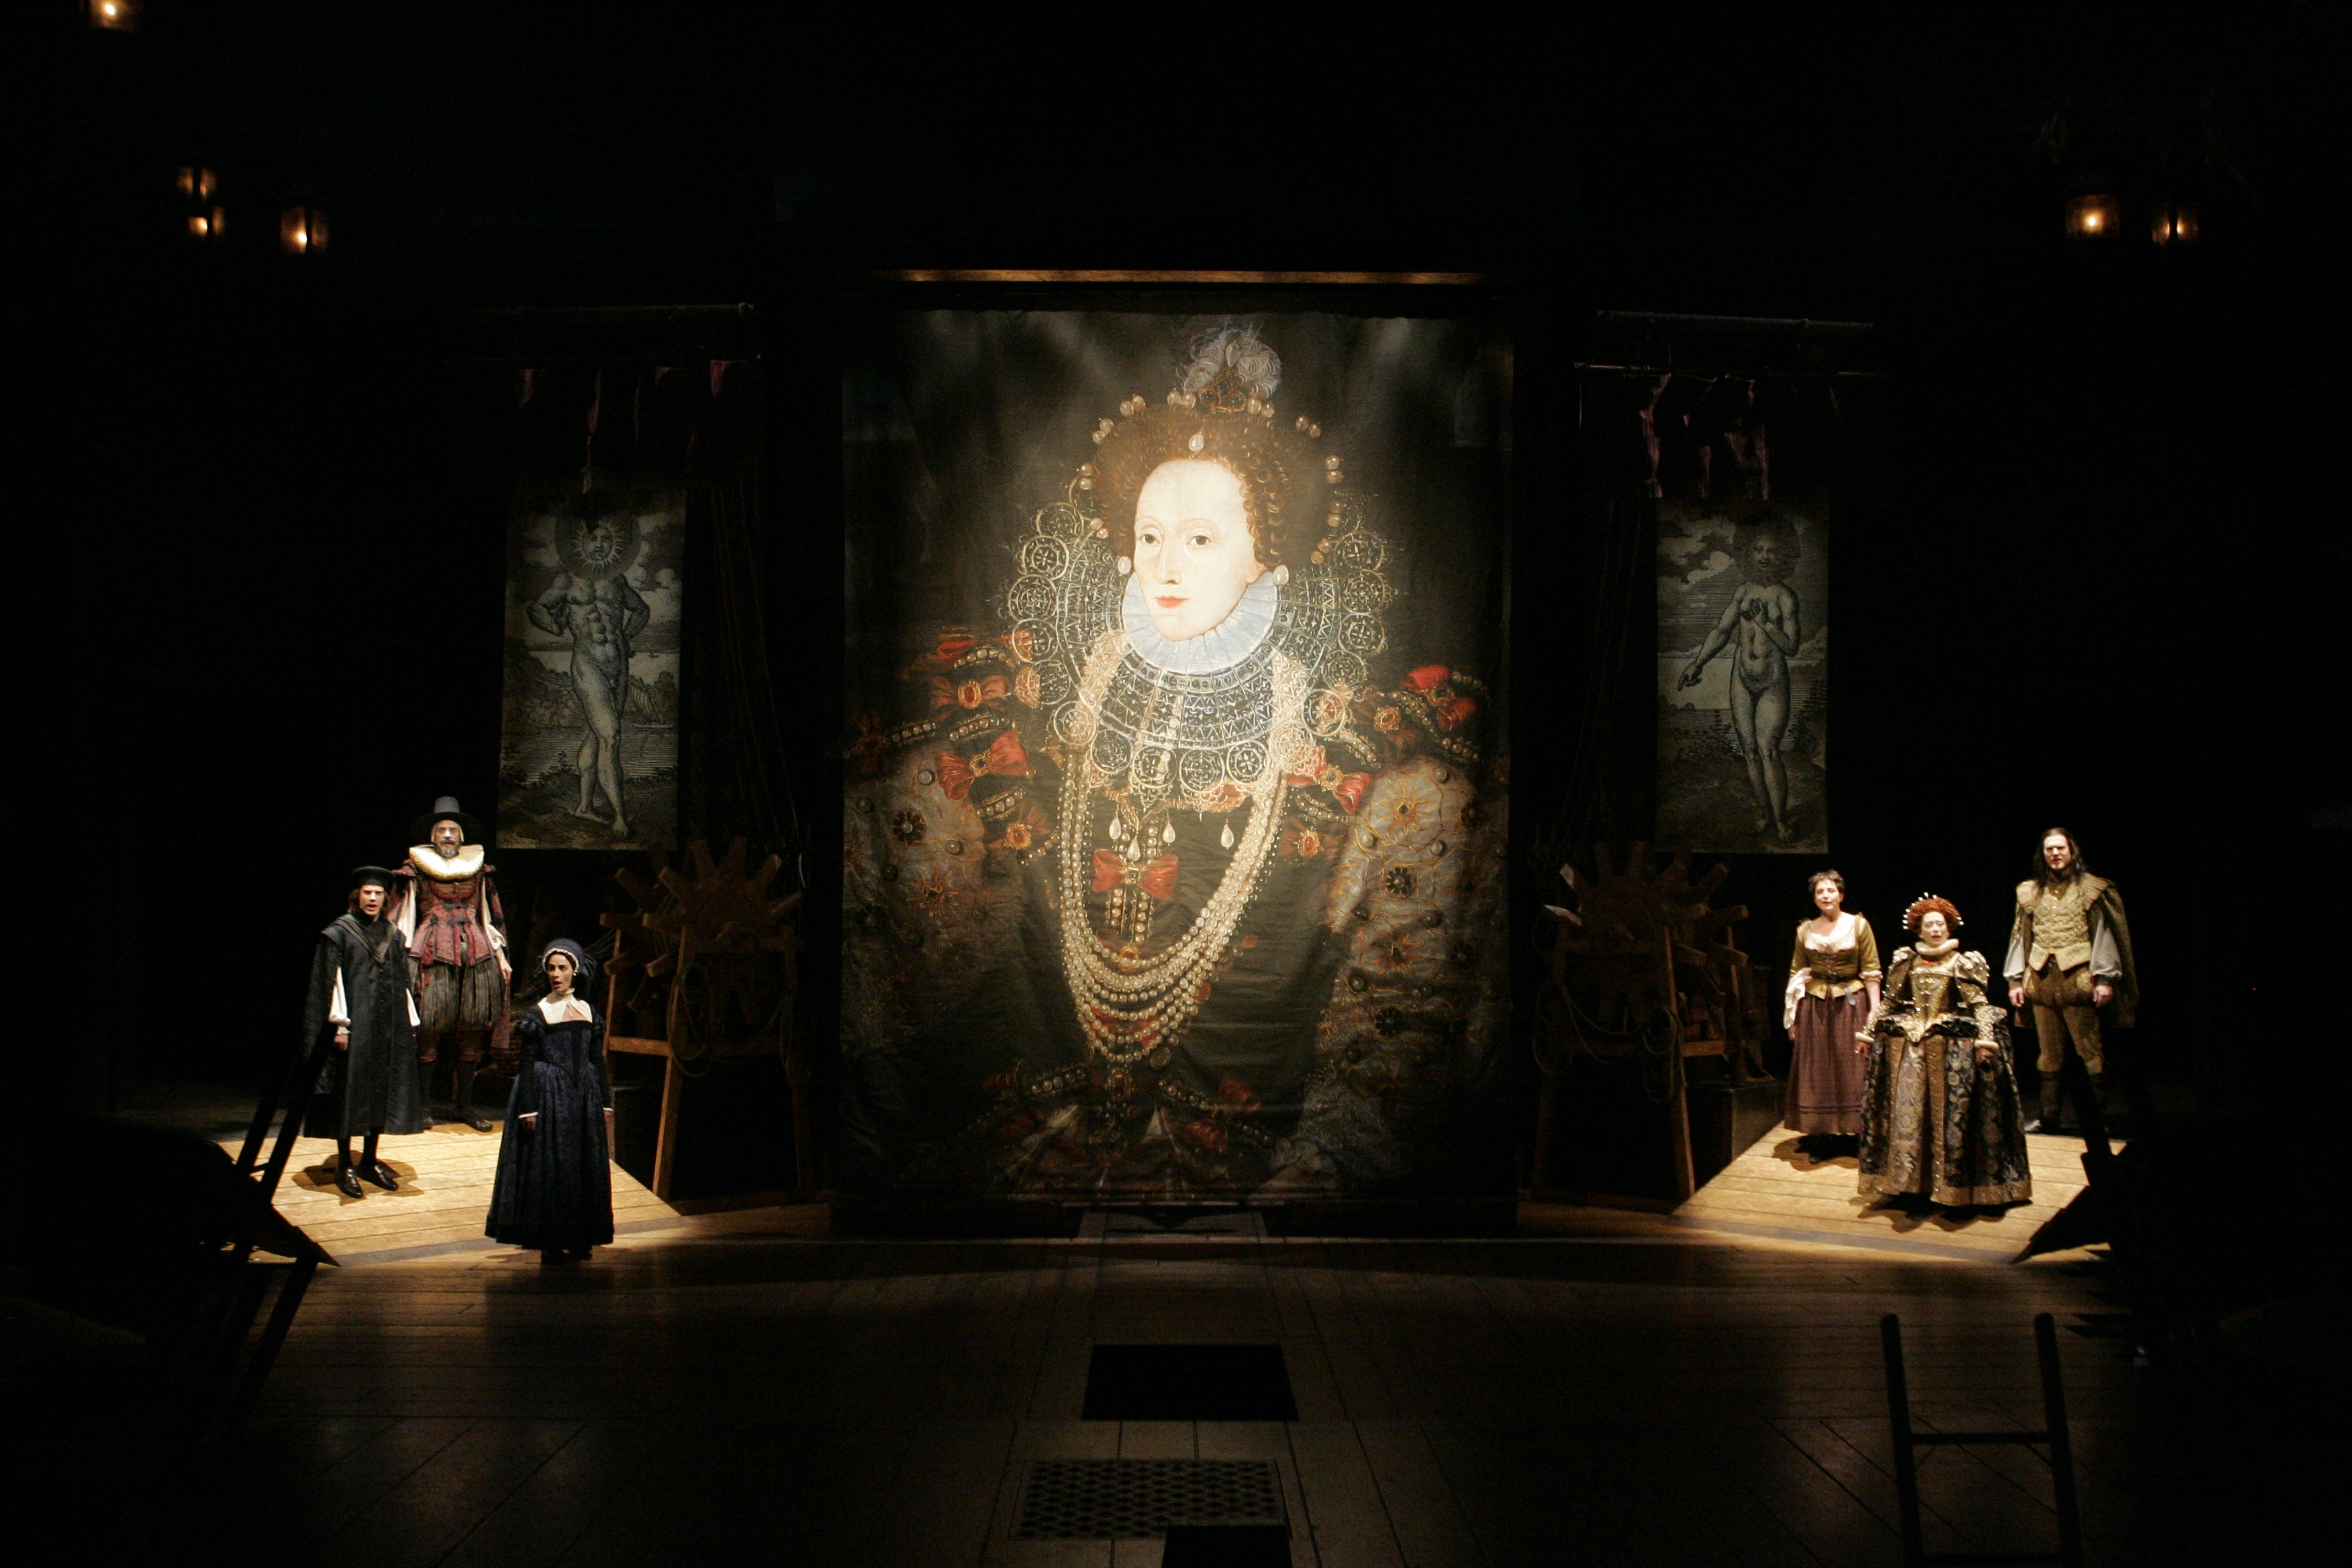 Giant portrait of Queen Elizabeth I with trios of Elizabethan-garbed characters on ramps flanking the sides.